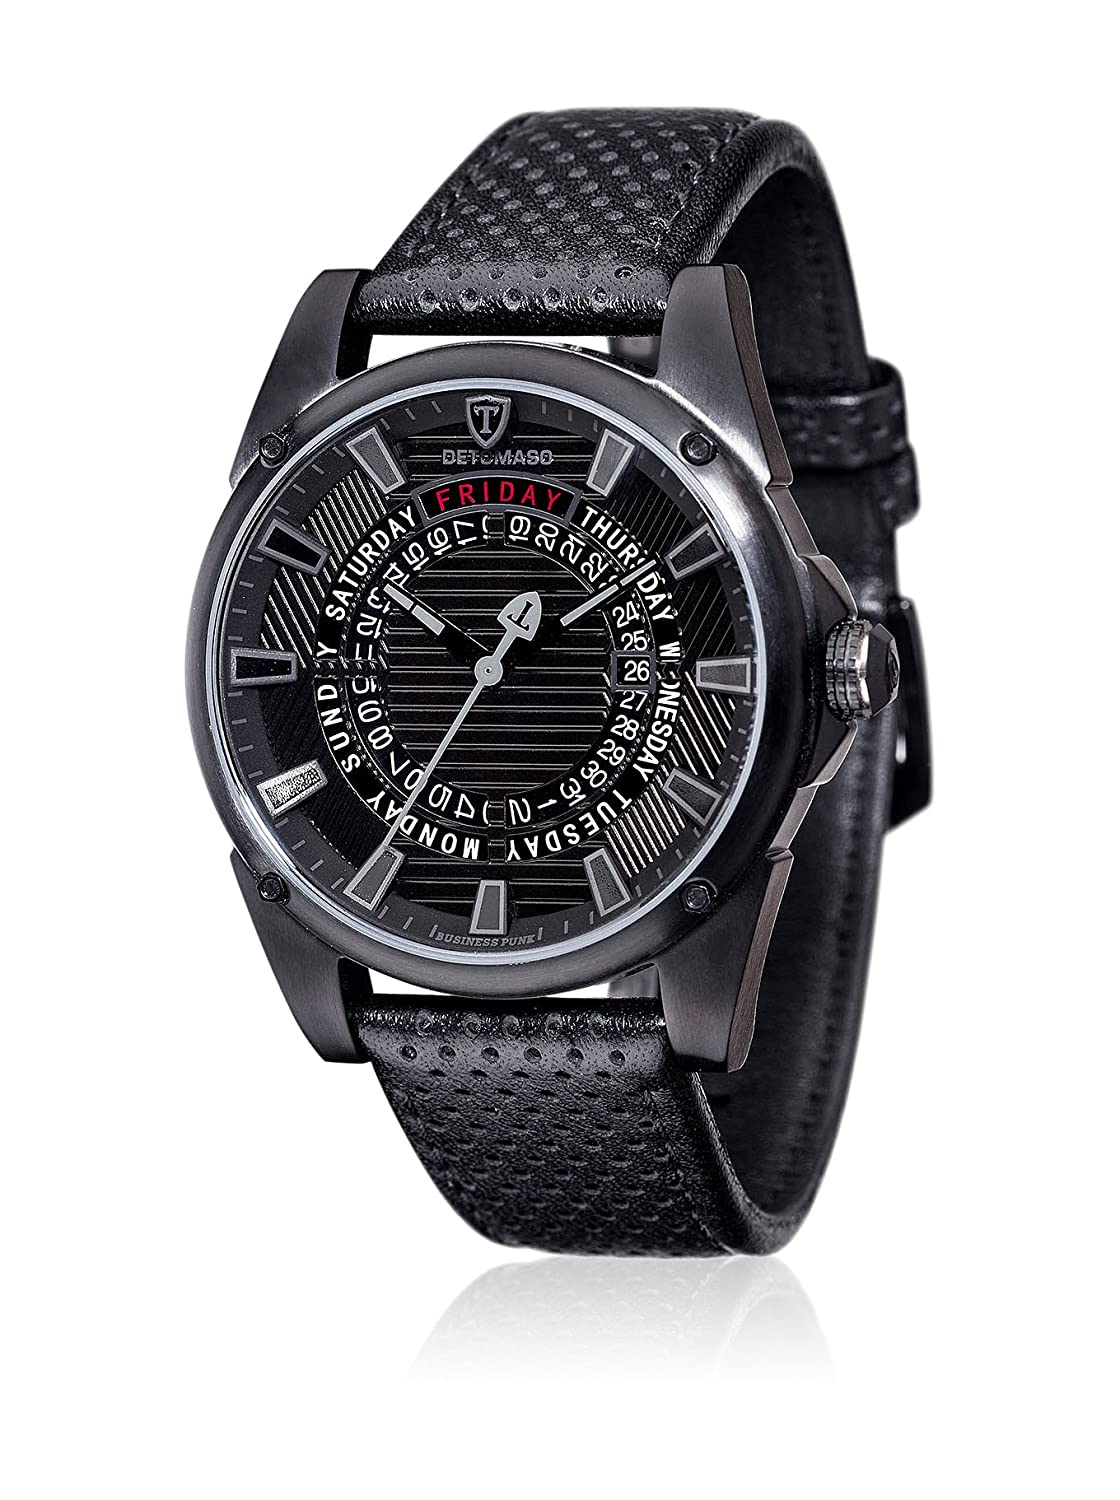 DETOMASO Herren-Armbanduhr Business Punk Black Man'S Man Young Guns Analog Quarz DT-YG105-B